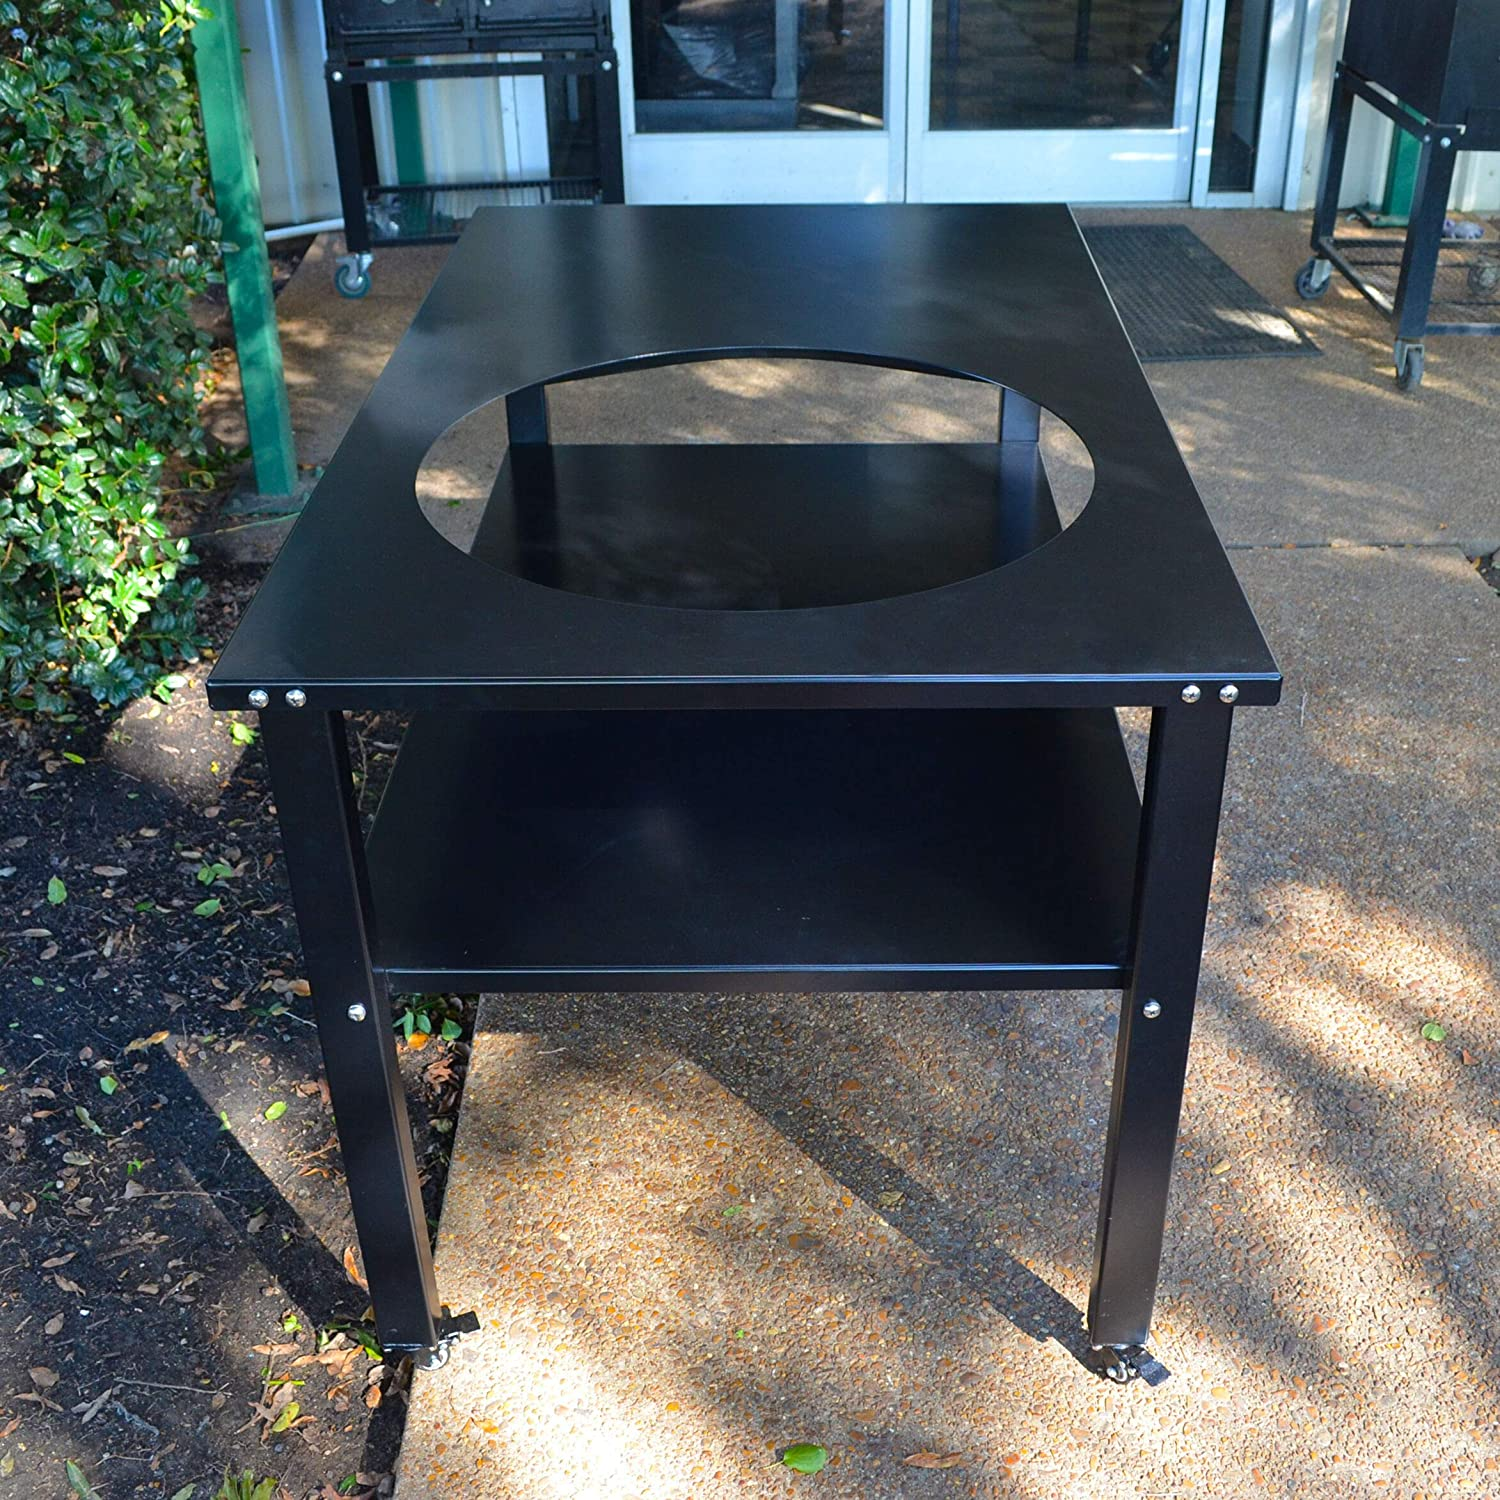 TITAN GREAT OUTDOORS Ceramic Grill Table Fits XL BGE Kamado Joe Aluminum Table Outdoor Prep Grill Cart Easy to Assemble